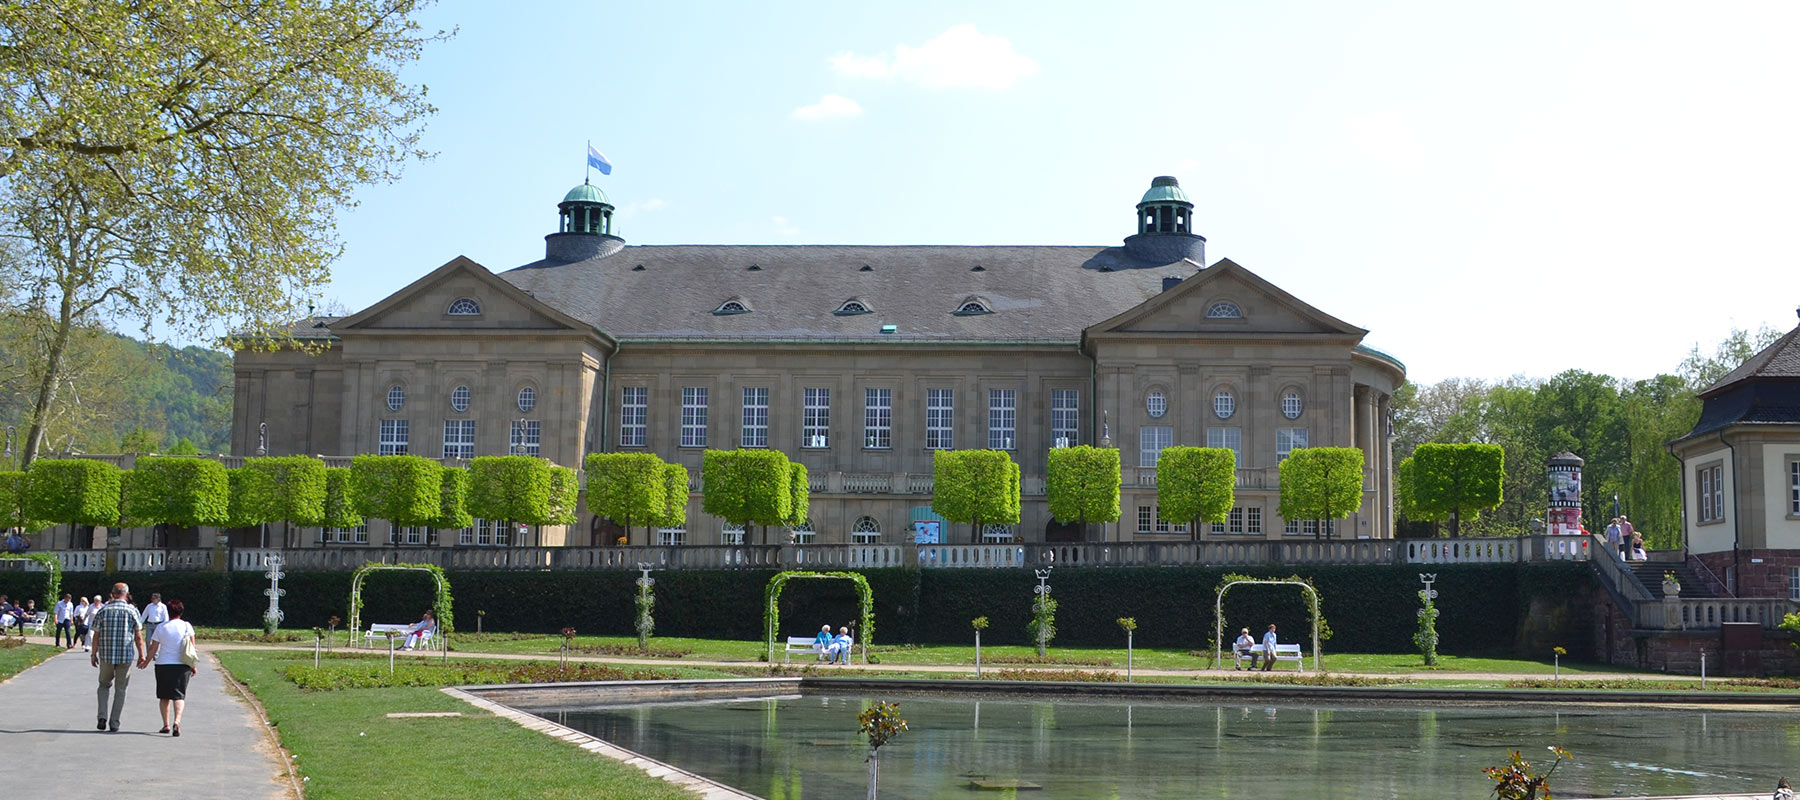 Regentenbau Bad Kissingen